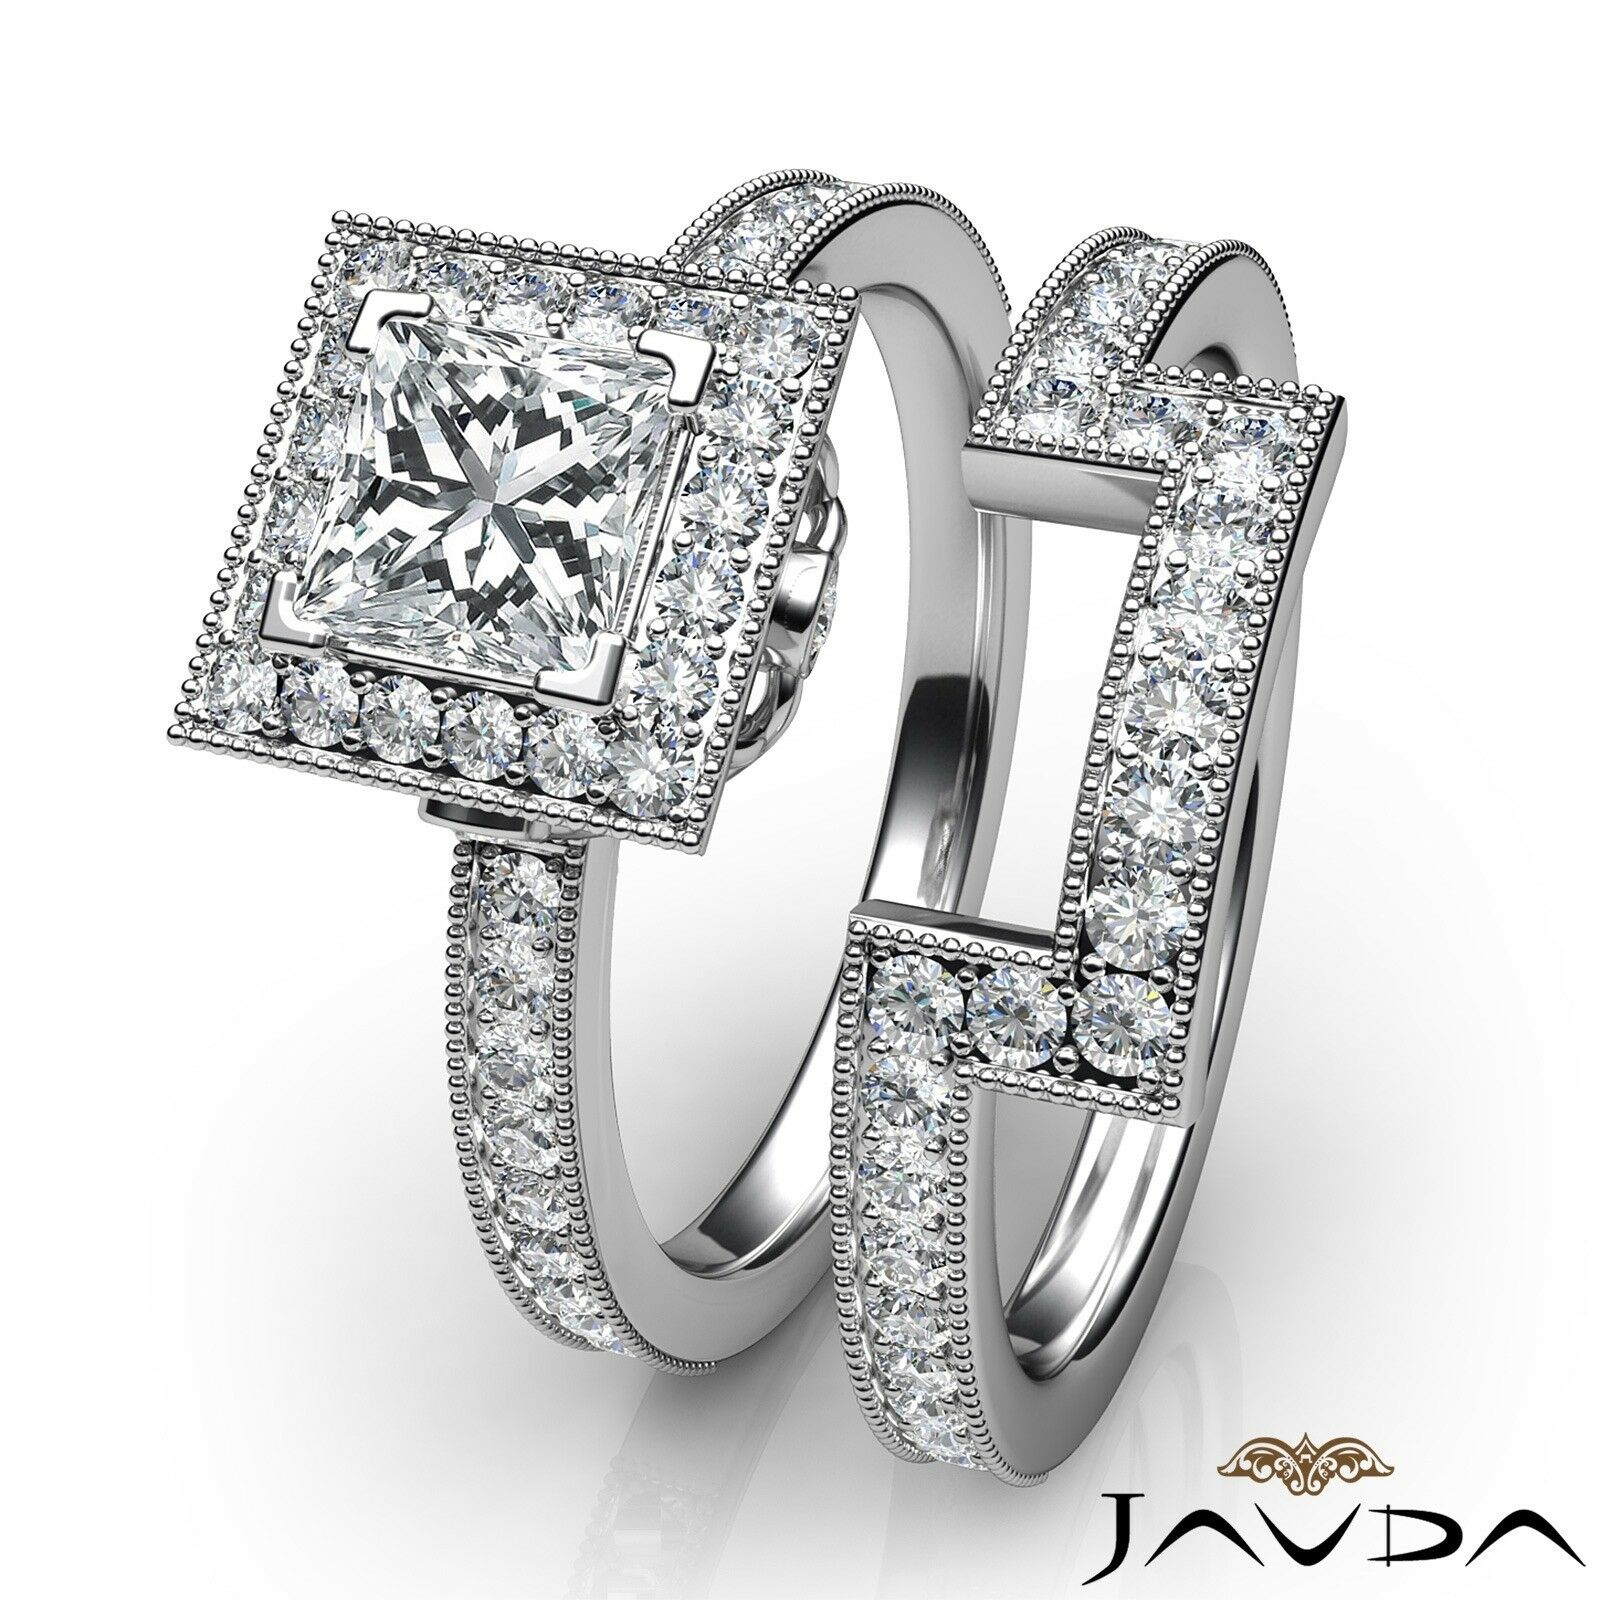 1.9ct Milgrain Edge Bridal Set Princess Diamond Engagement Ring GIA F-VS2 W Gold 3